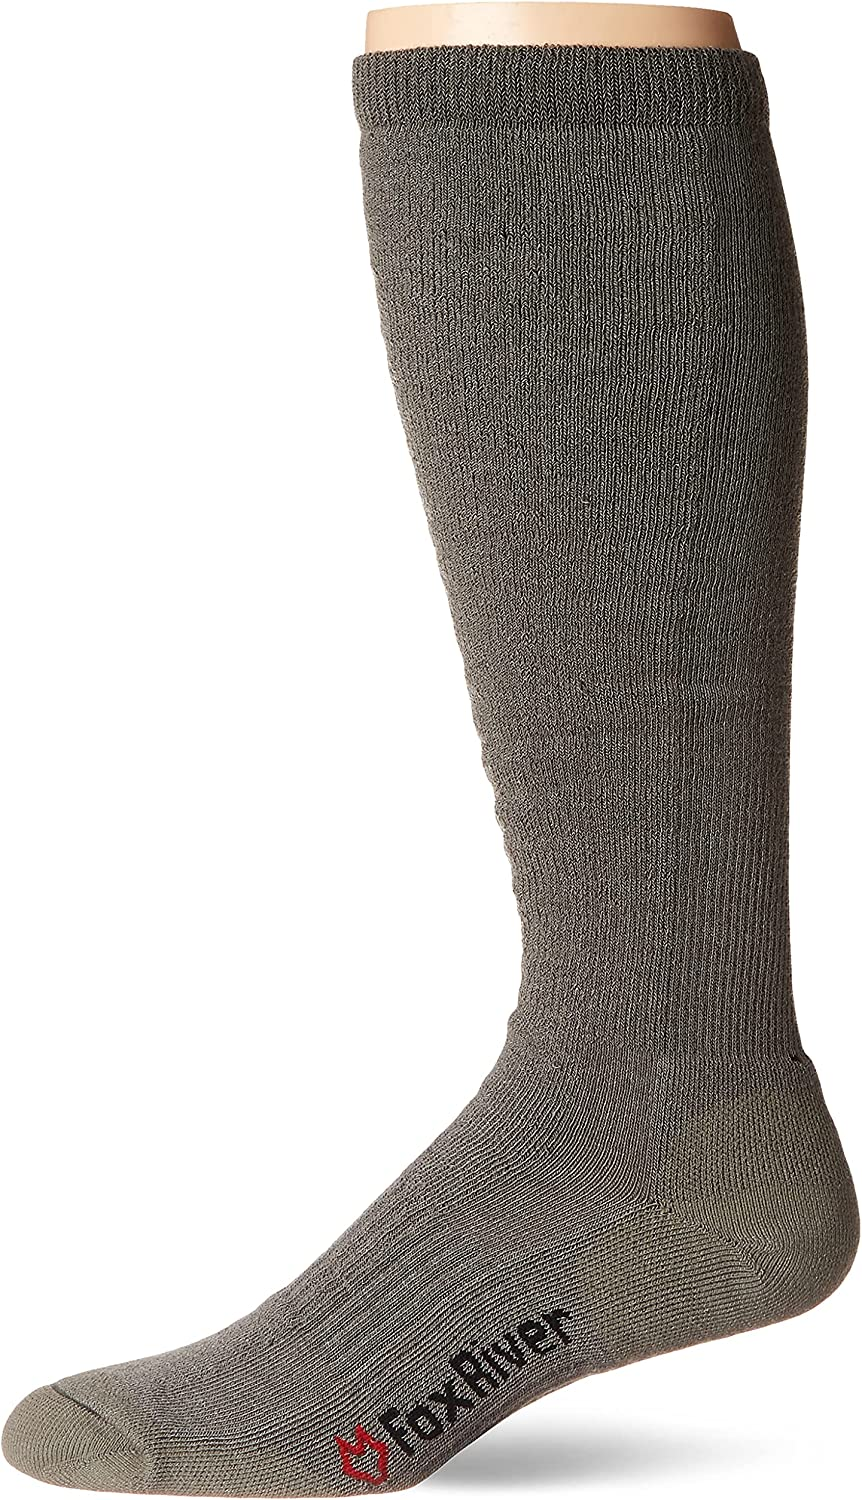 Fox Luxury River Men's Fatigue Fighter Over-The-Calf Socks Upgrade Max 74% OFF with